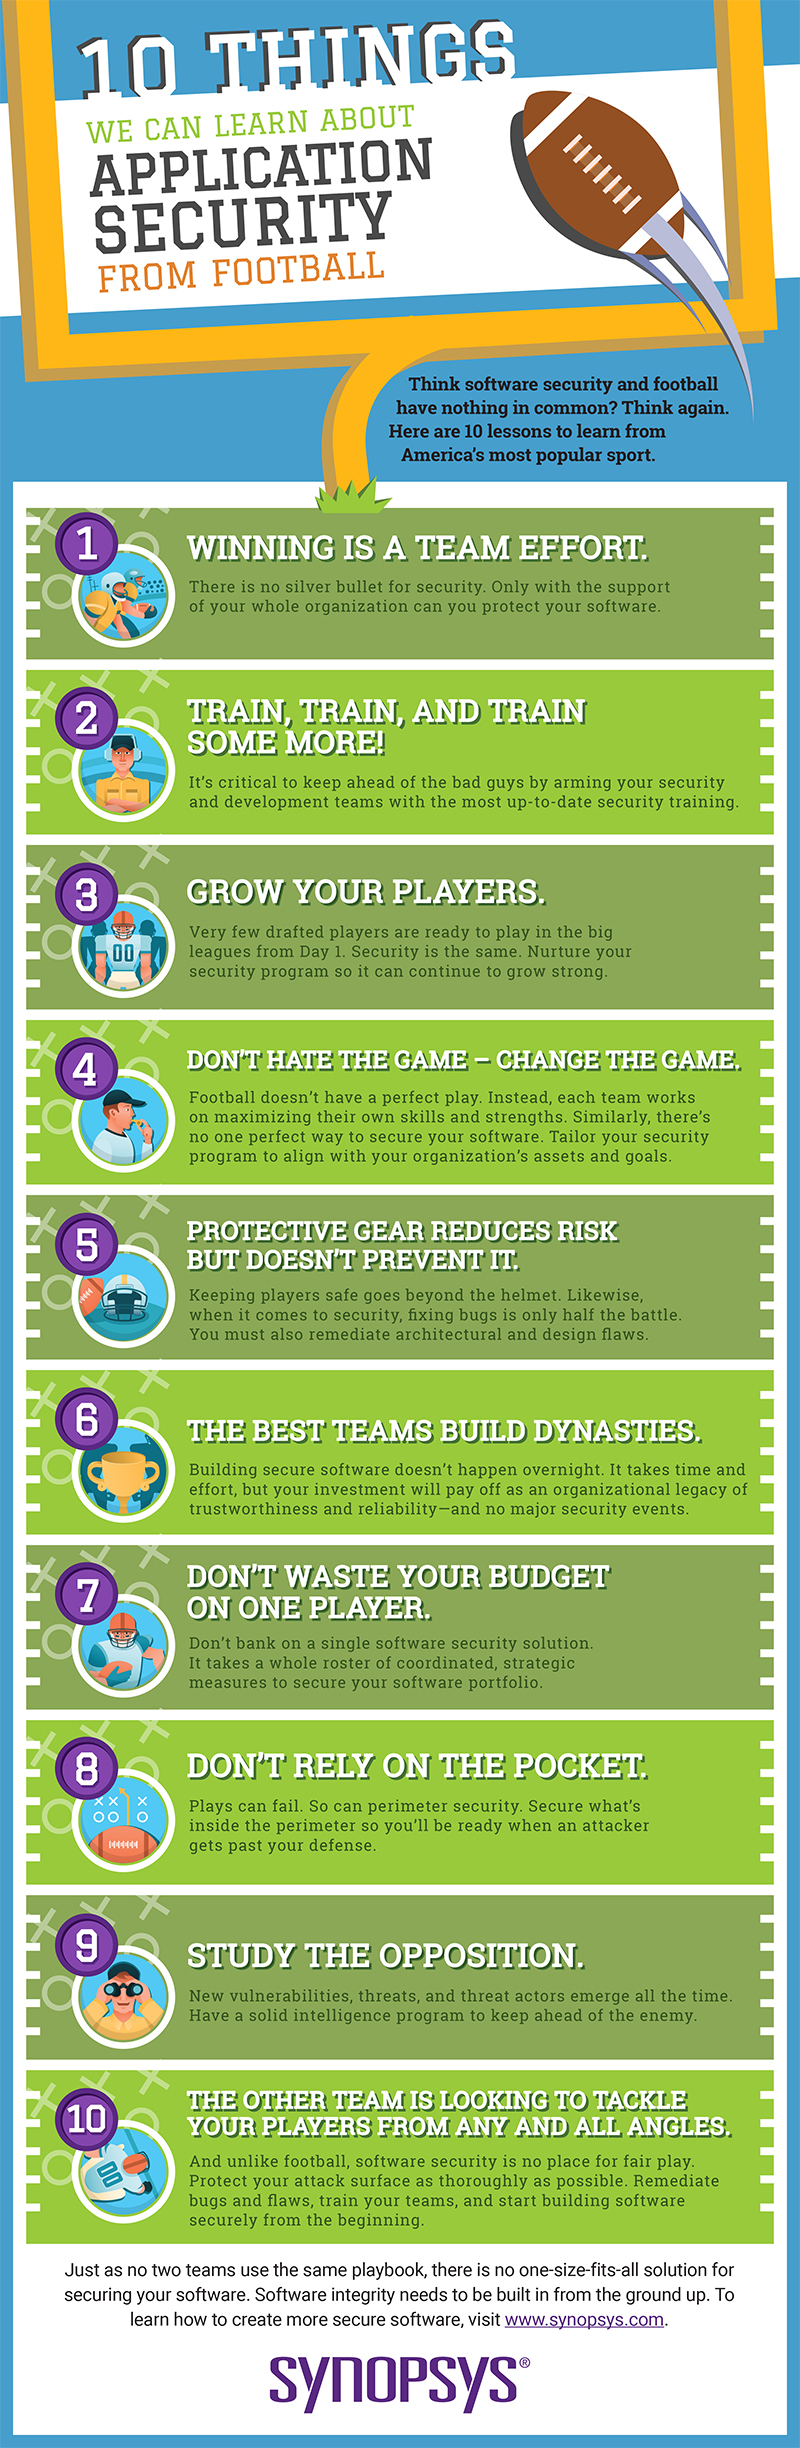 Infographic: 10 things we can learn about application security from football